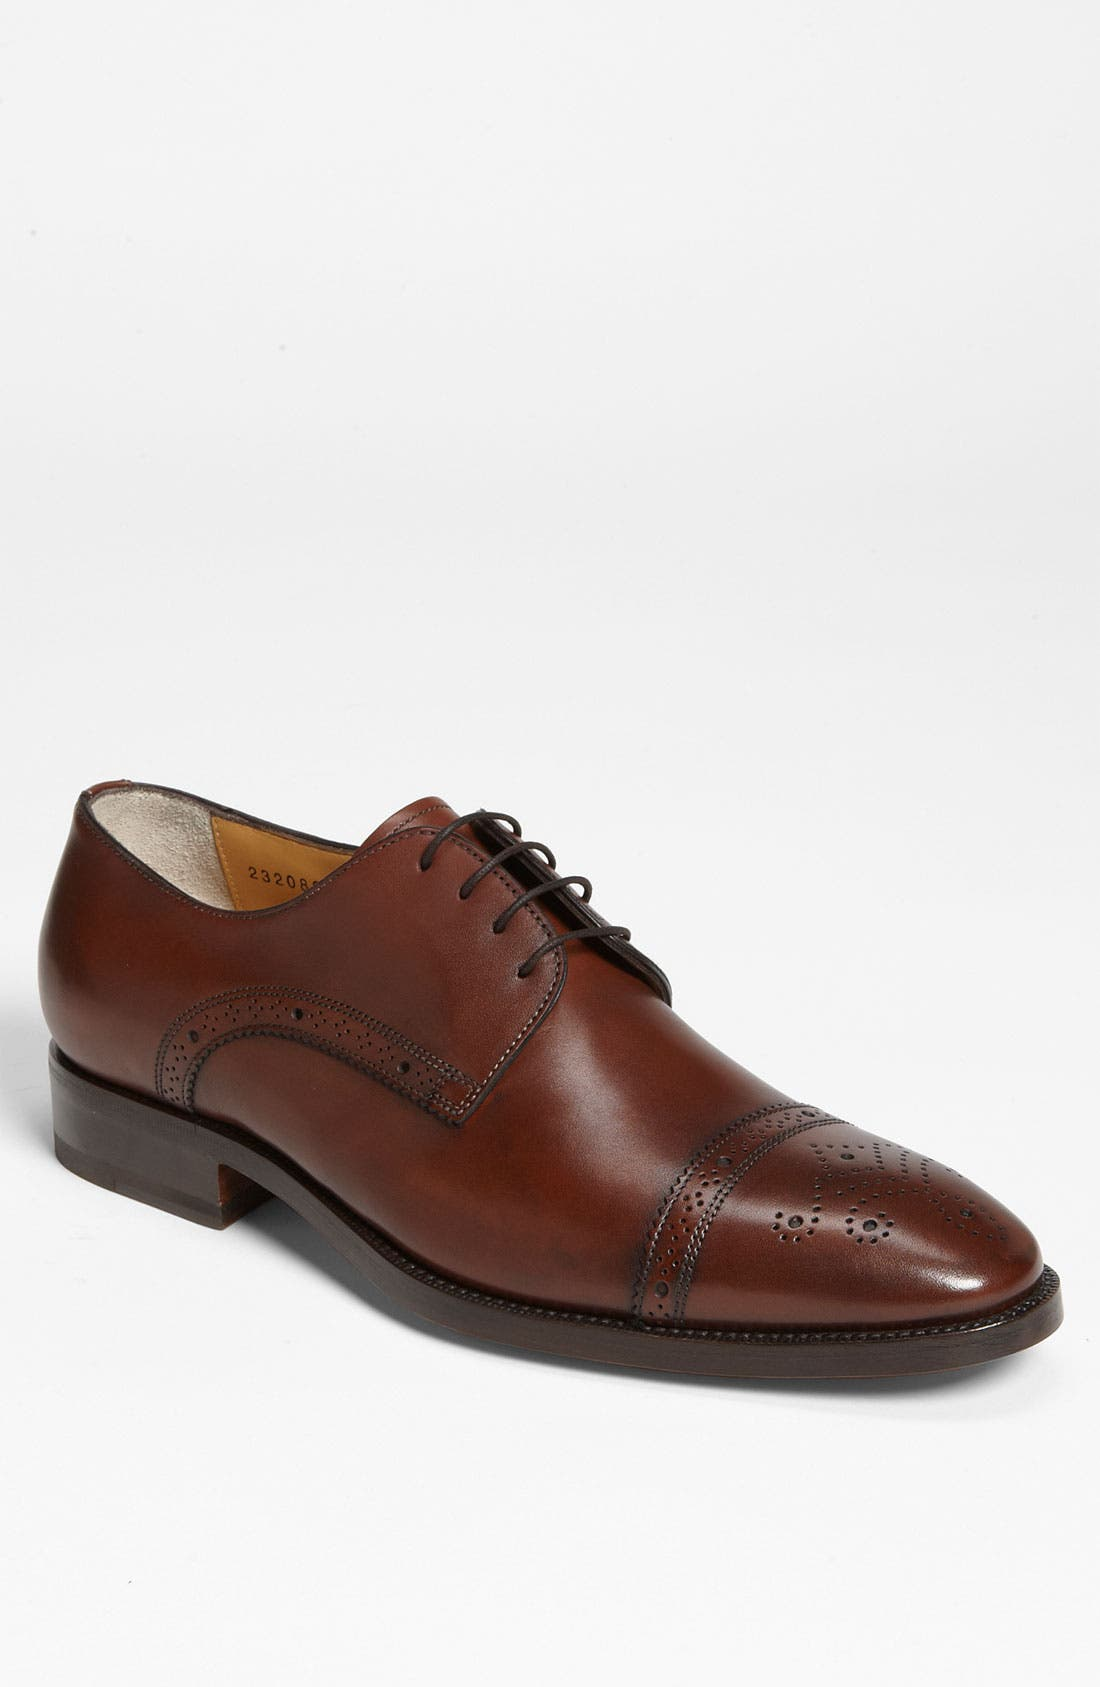 Alternate Image 1 Selected - Santoni 'Quebec' Cap Toe Oxford